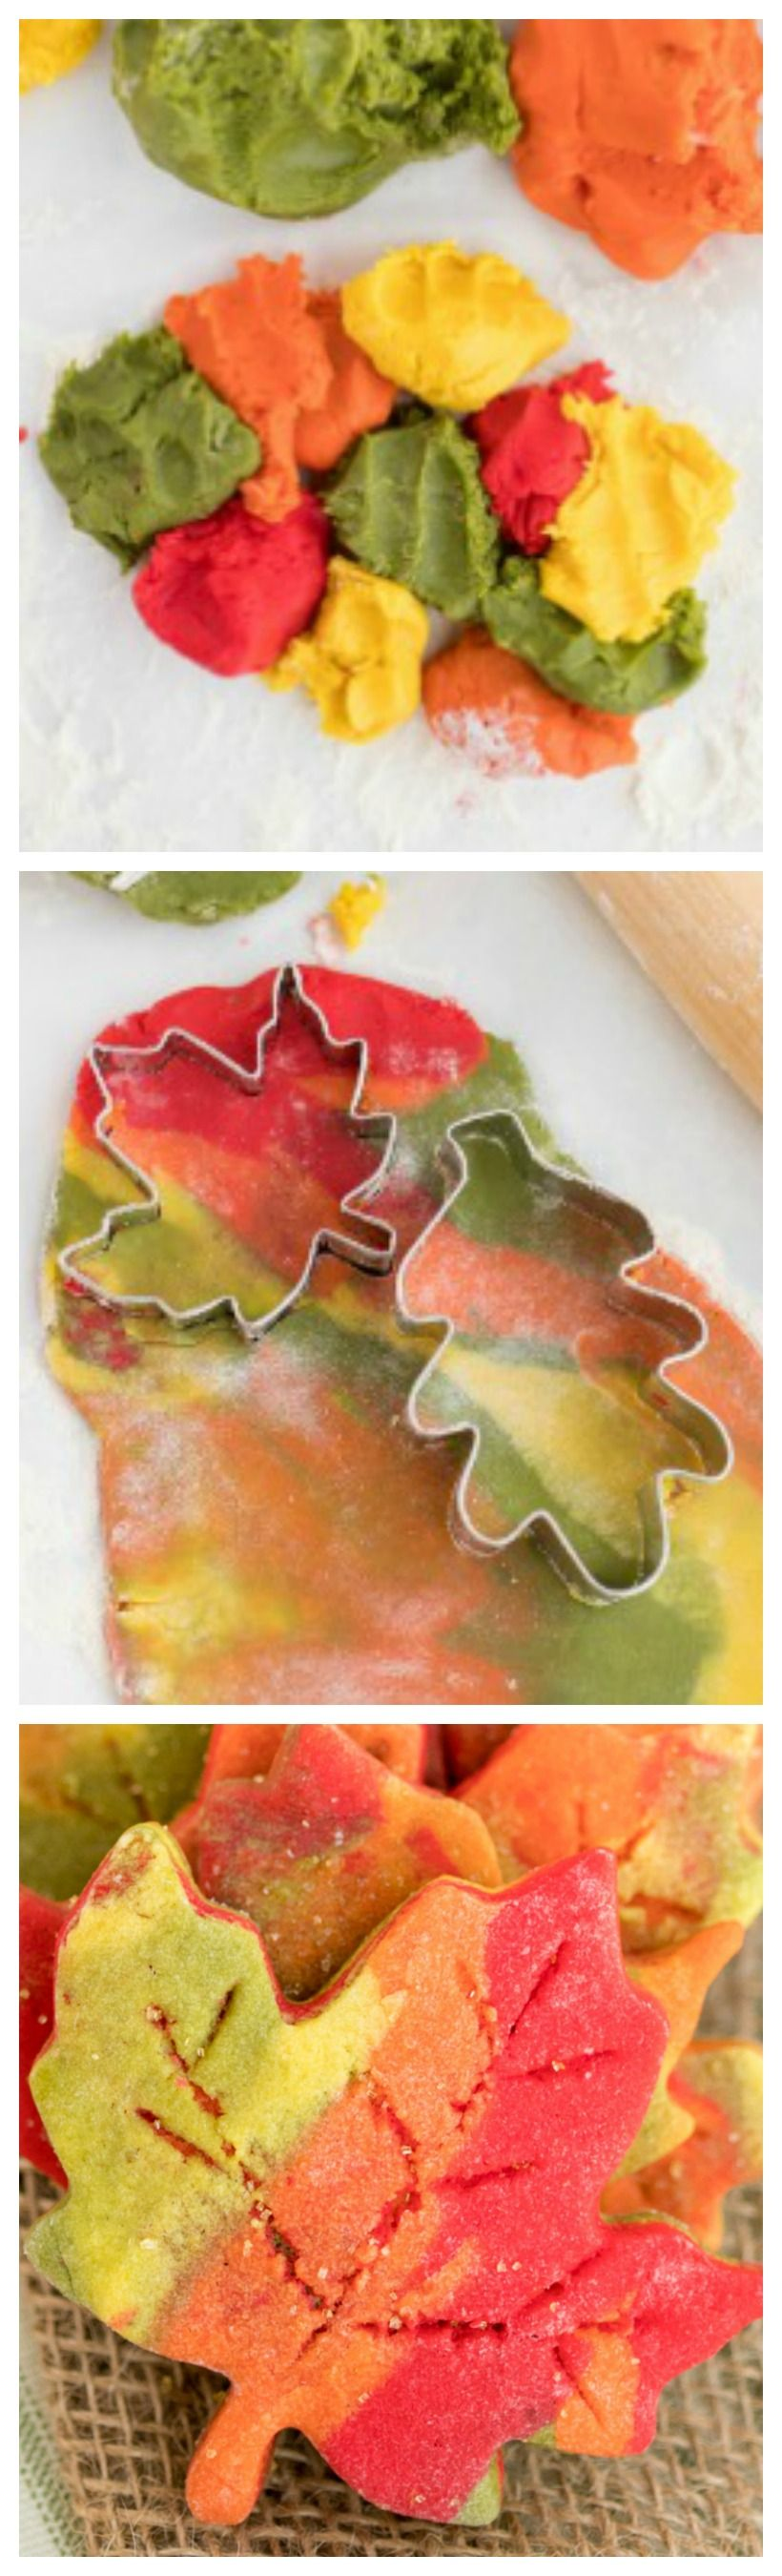 How To Make Fall Leaf Cut Out Cookies